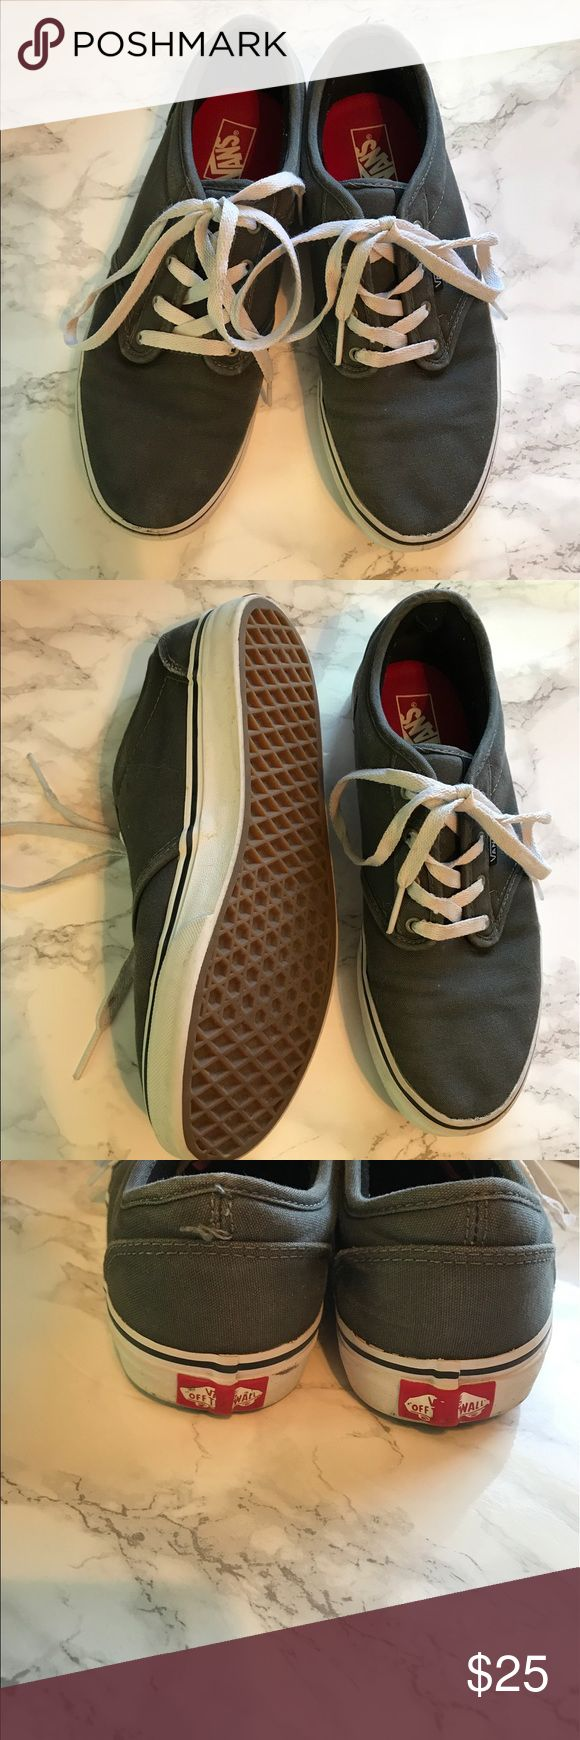 Boys Vans Shoes Gray Size 7 Great condition. See photos for details. Smoke free, pet friendly home. Vans Shoes Sneakers